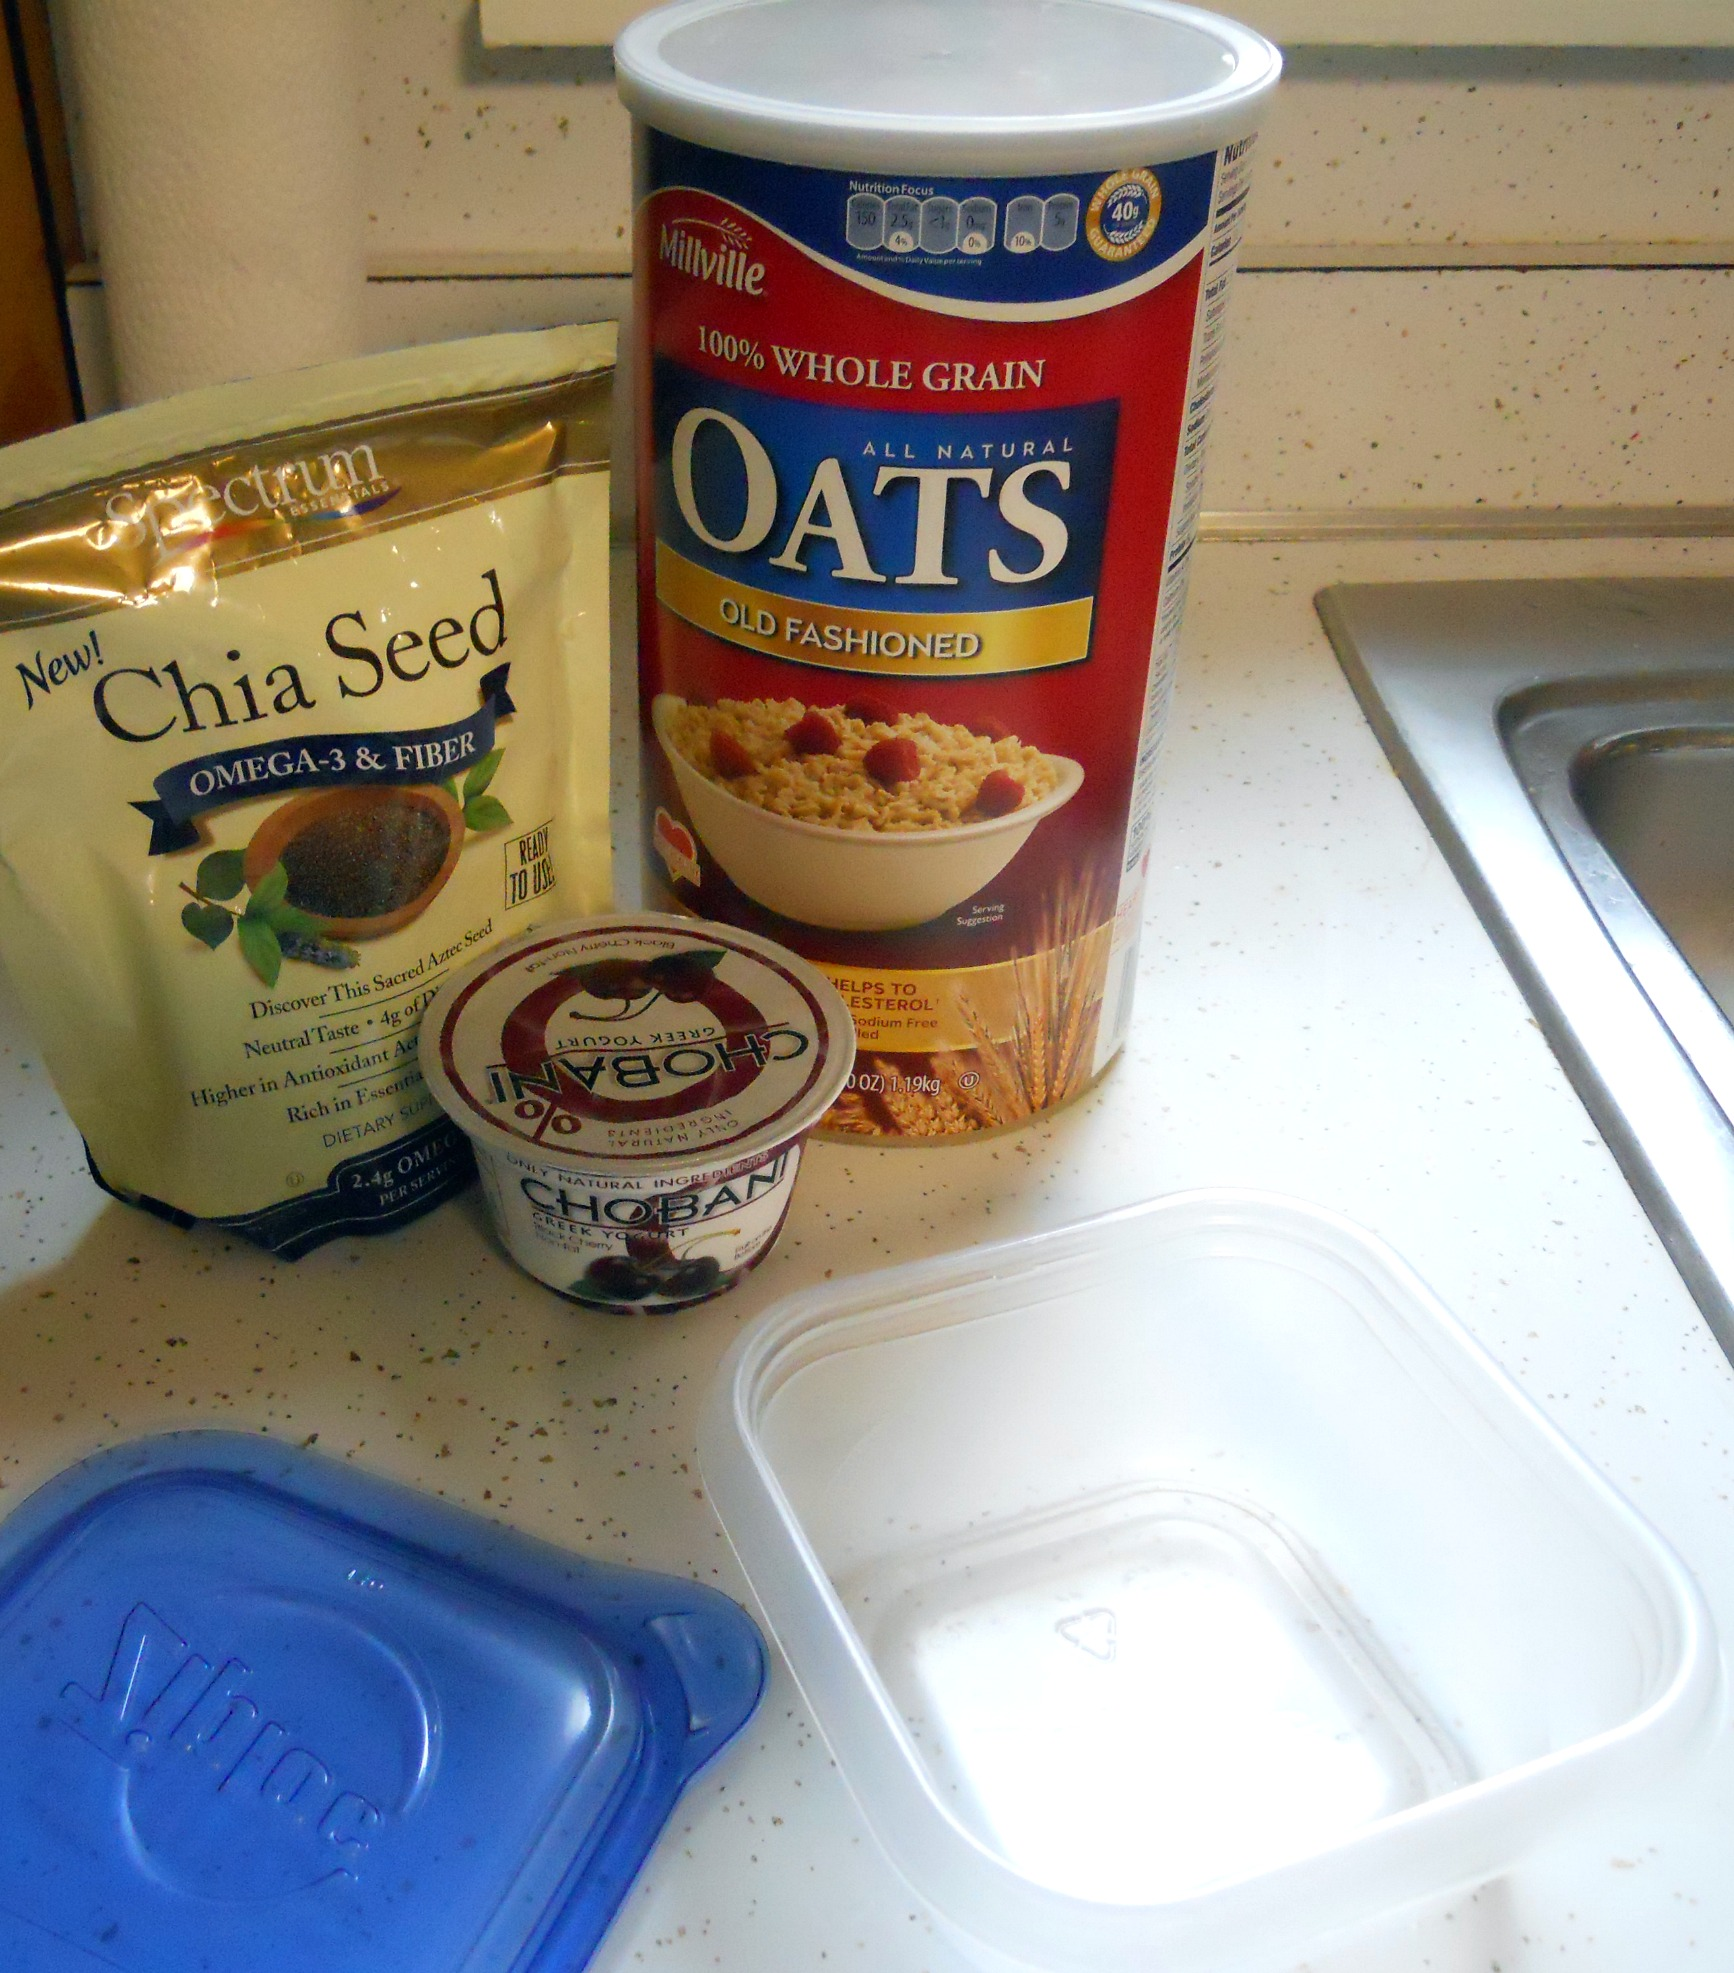 Overnight Oats, Chobani Recipes